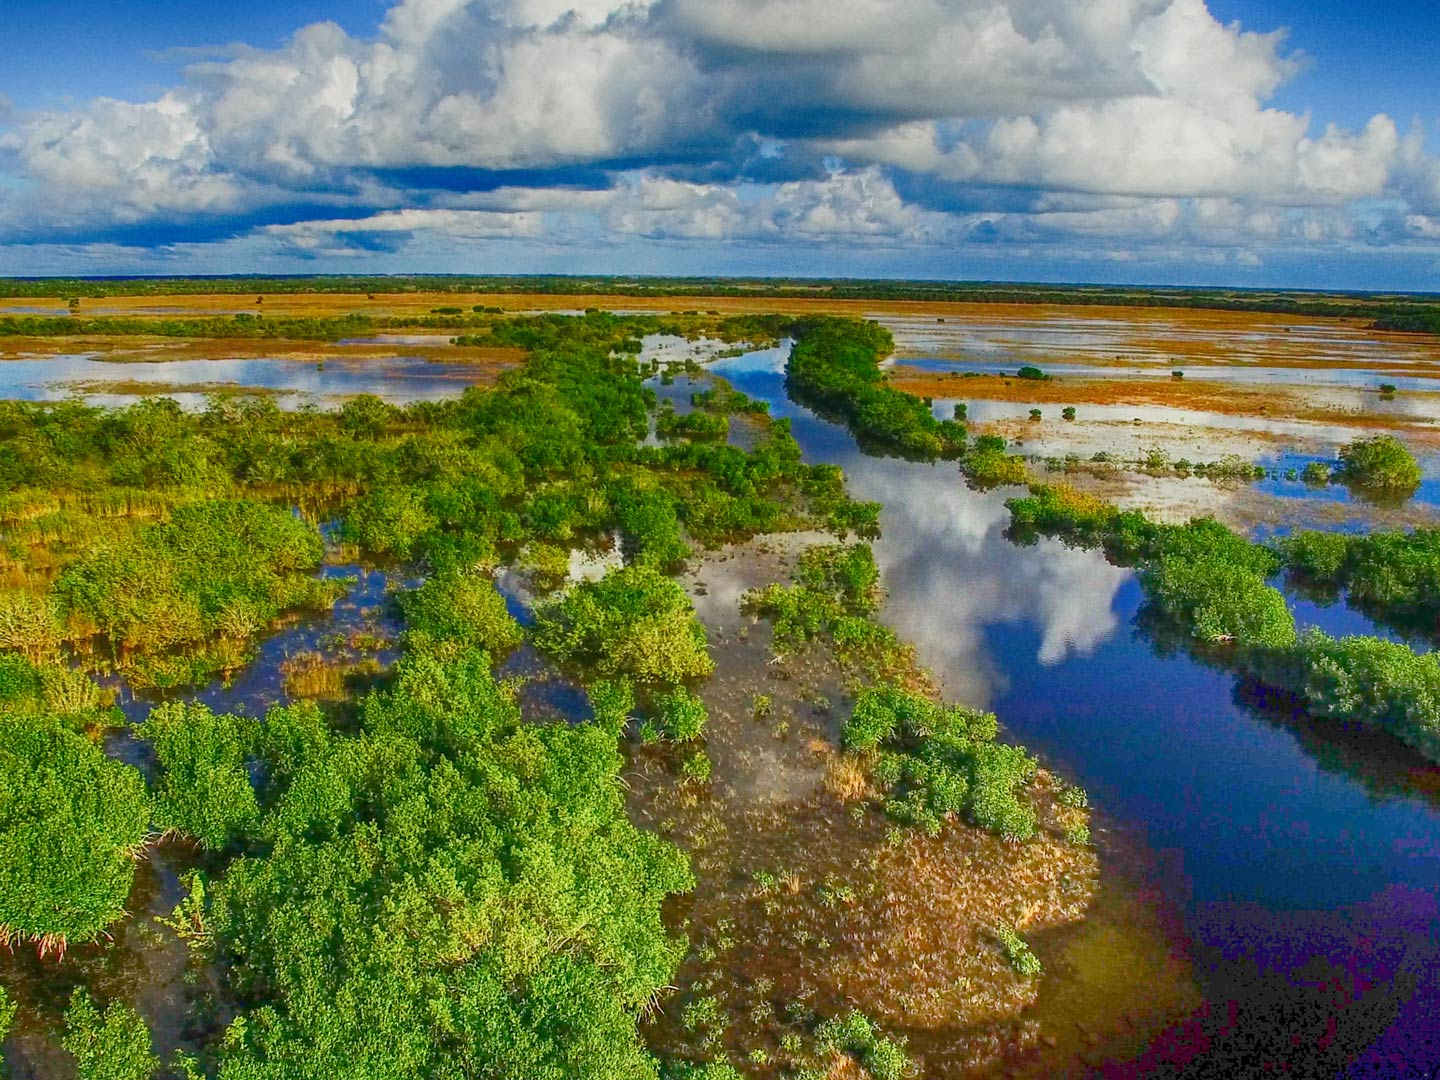 Overhead view of the swamp in the Everglades, Florida